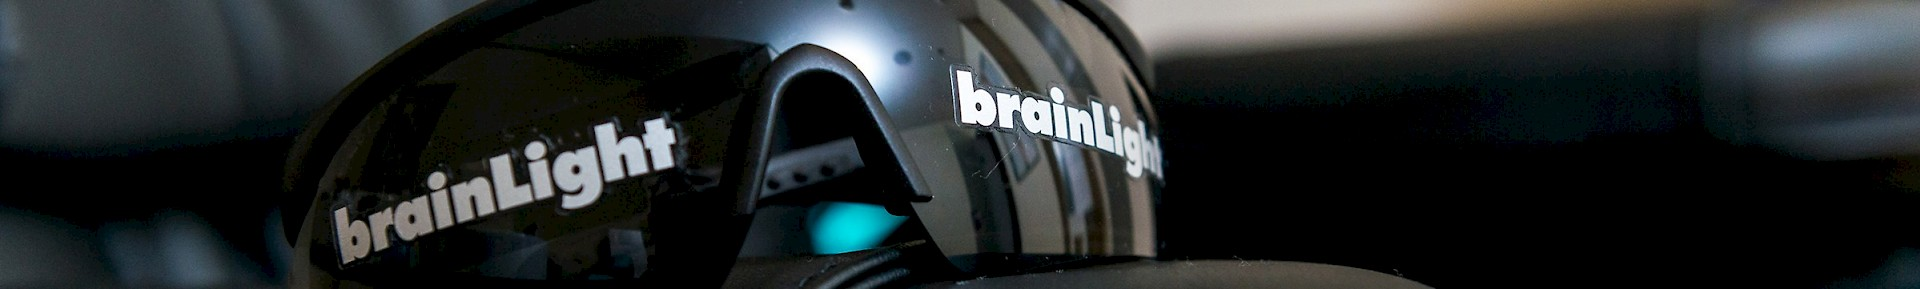 BrainLight visualization goggles